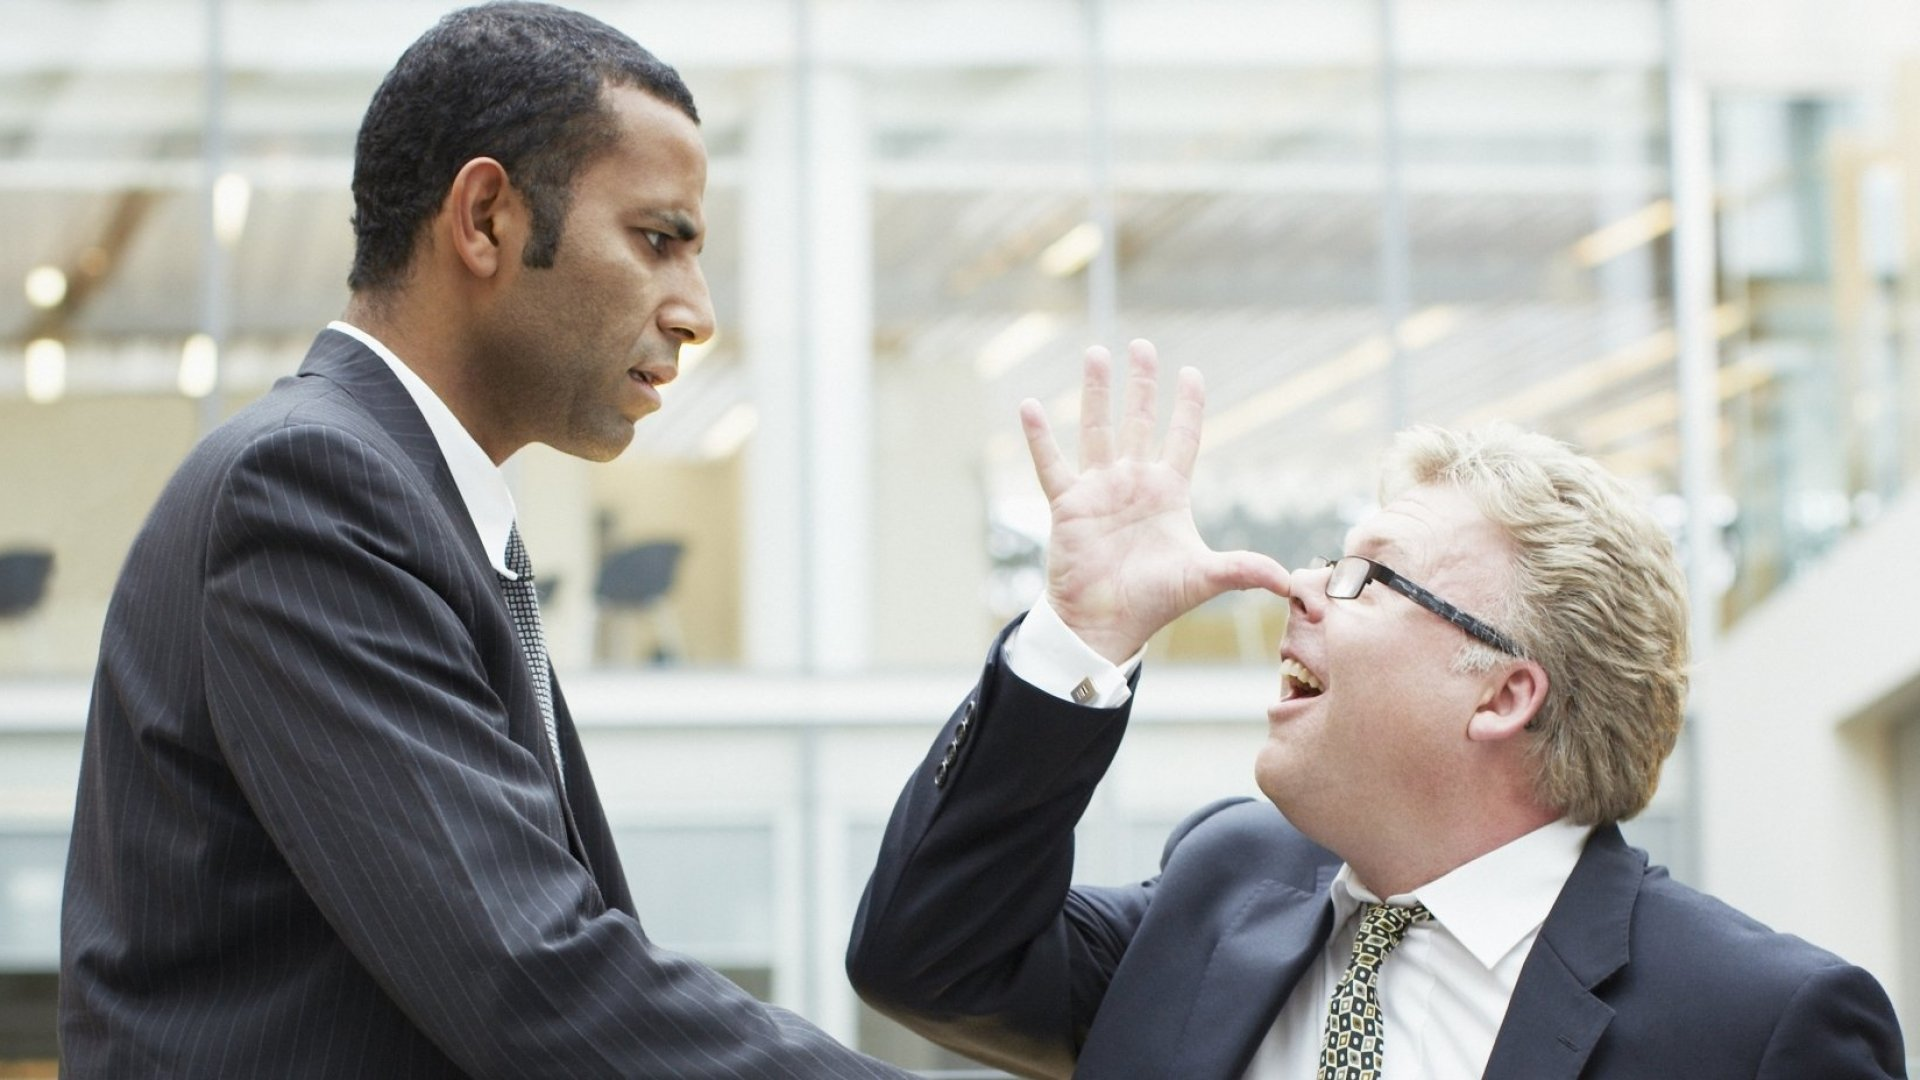 Why Your Company Probably Has a Rudeness Problem